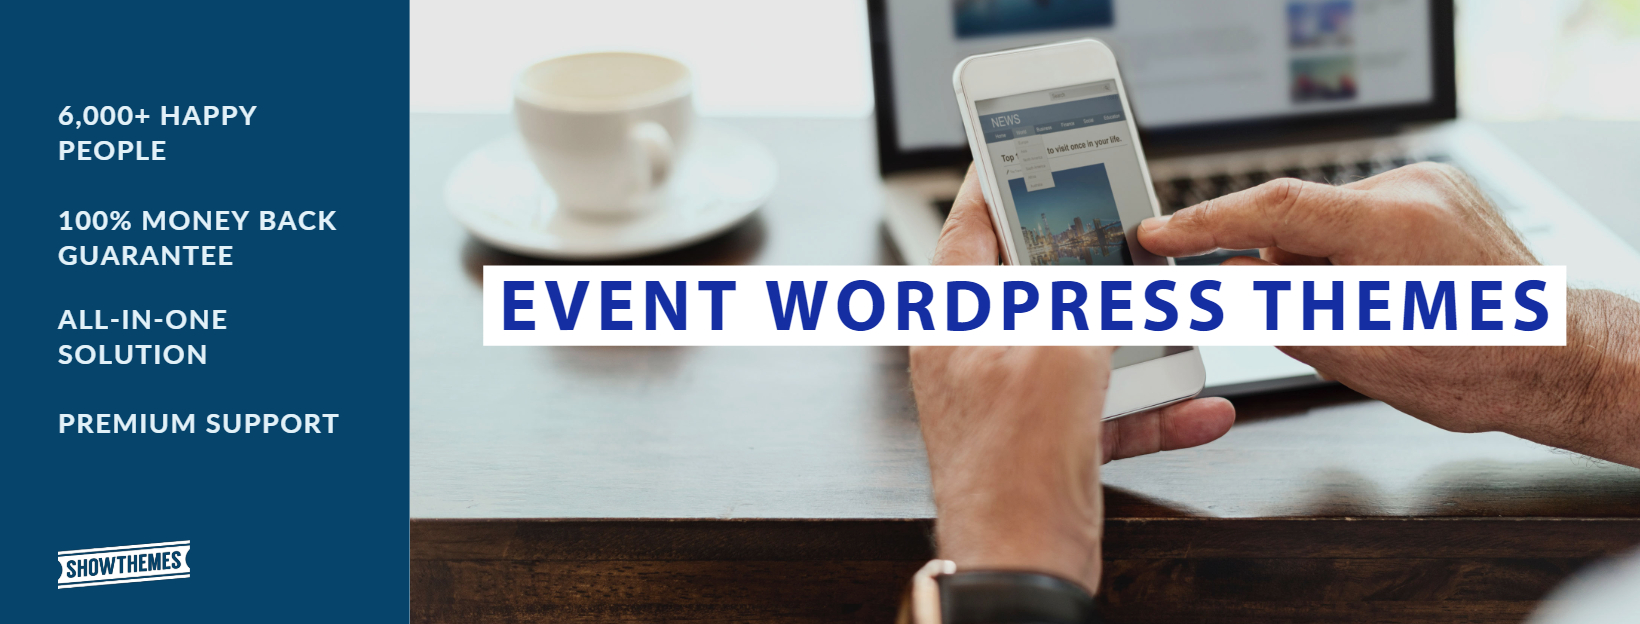 WordPress Event Themes - Best Web Tools for Designers and Developers